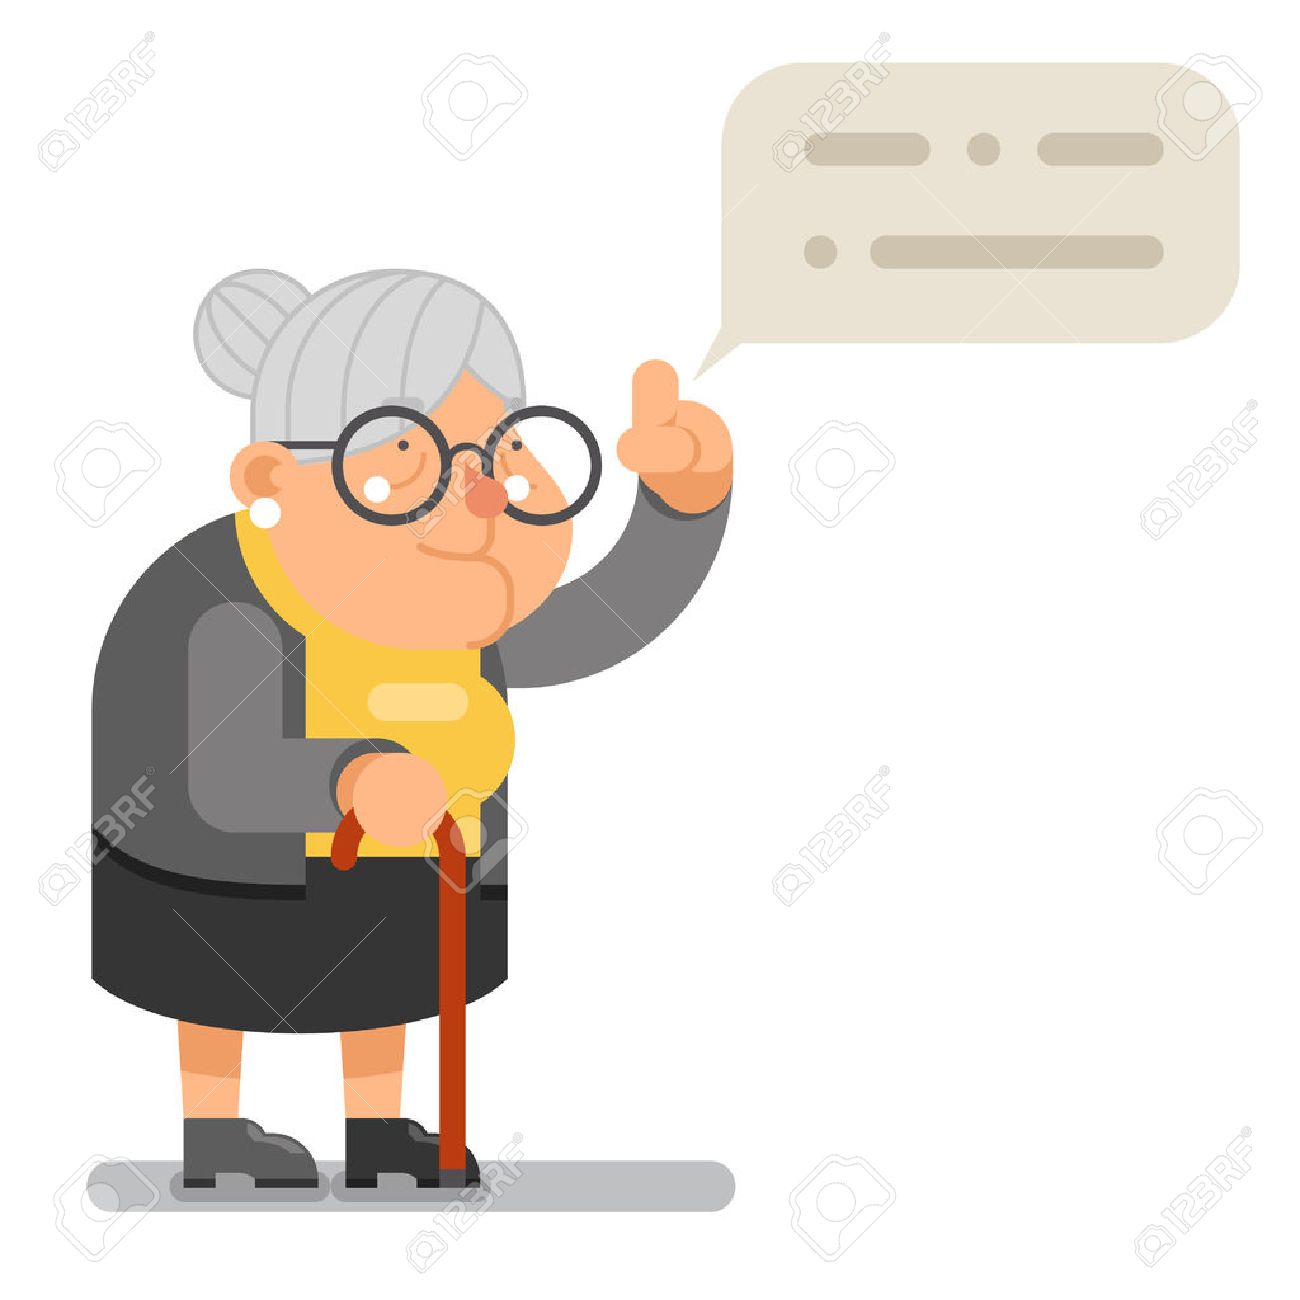 Wise Teacher Guidance Granny Old Lady Character Cartoon Flat Vector illustration - 68581199